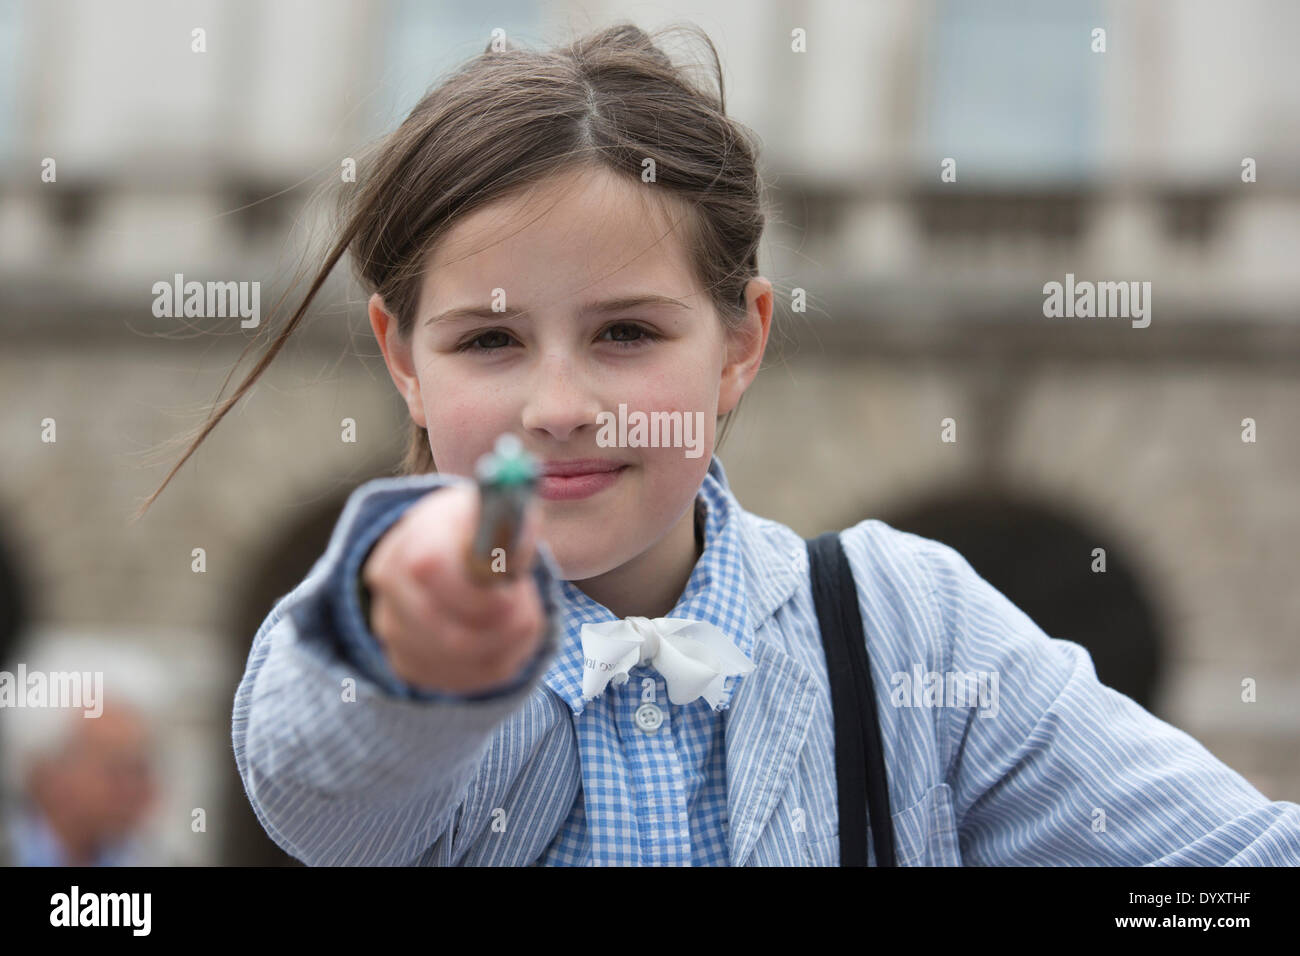 London, UK. 27 April 2014. Little Doctor Who fan with a sonic screwdriver. Sci-Fi fans gathered in the Courtyard Stock Photo